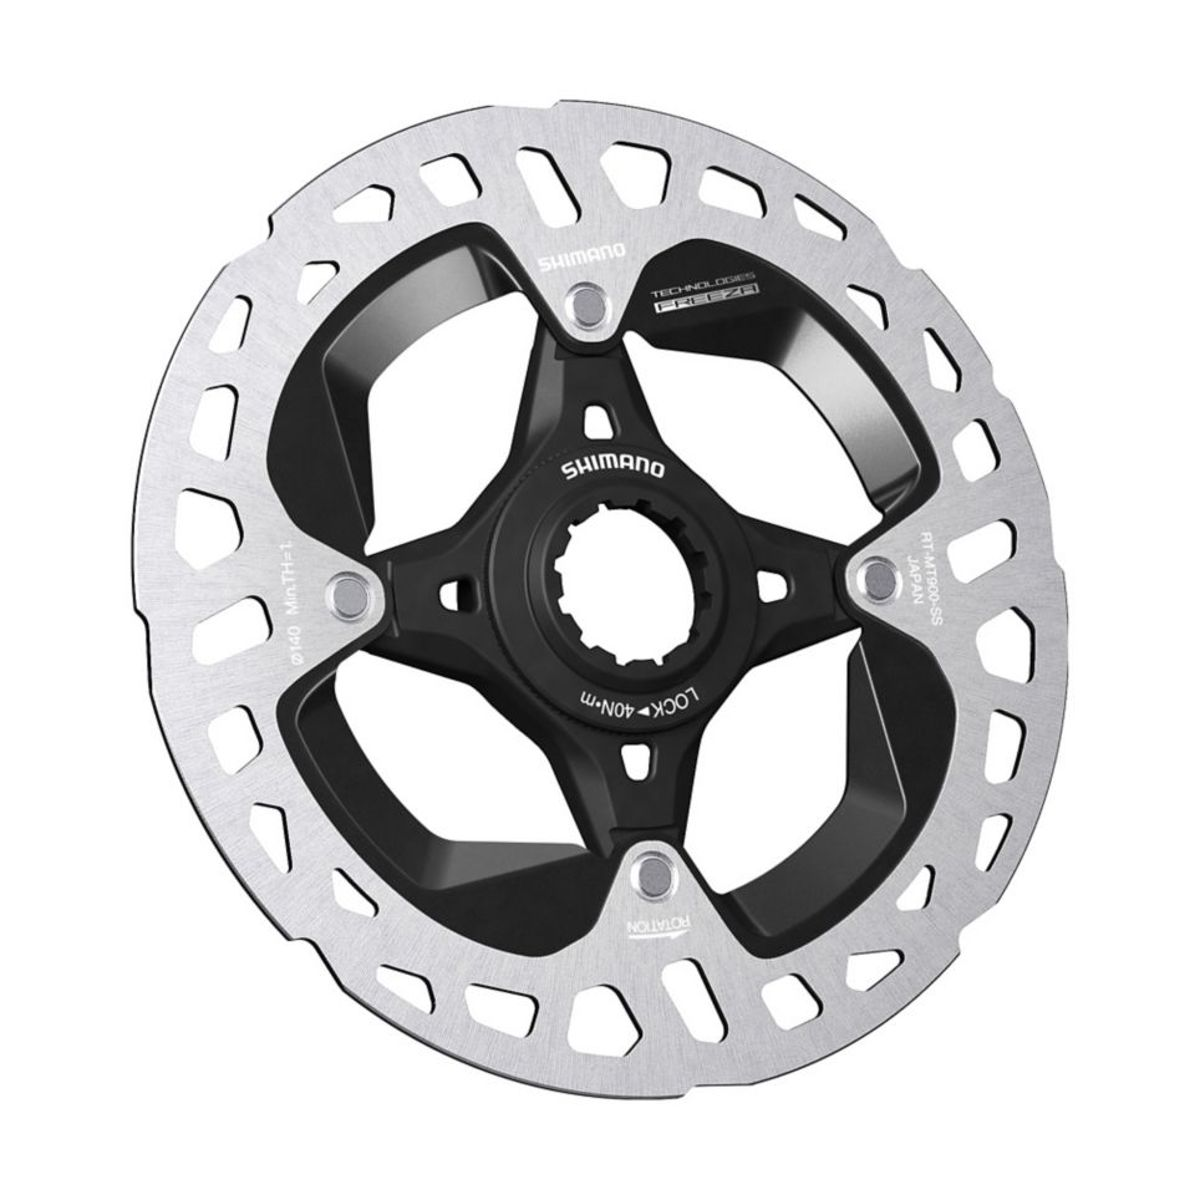 XTR RT-MT900 disc rotor